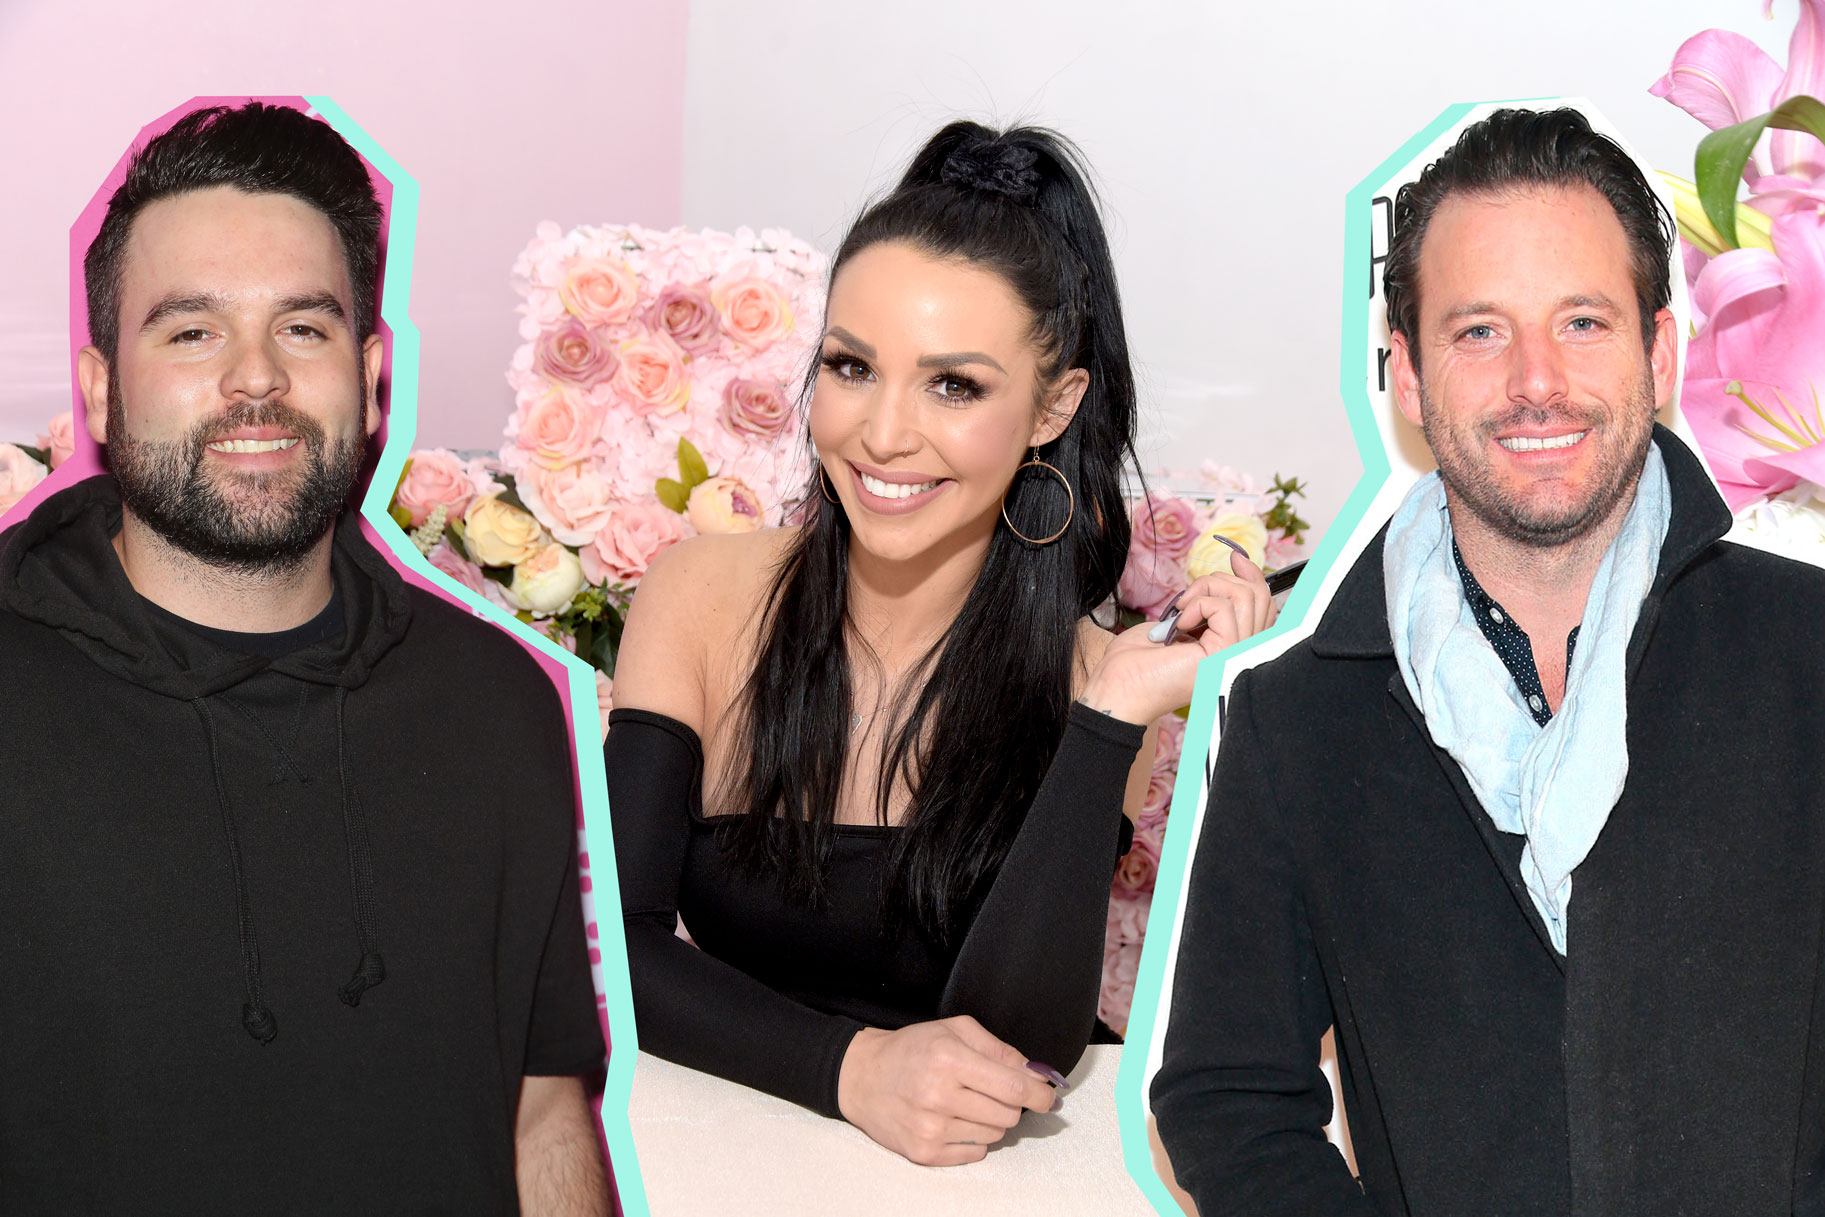 scheana-mike-shay-rob-valletta-song.jpg